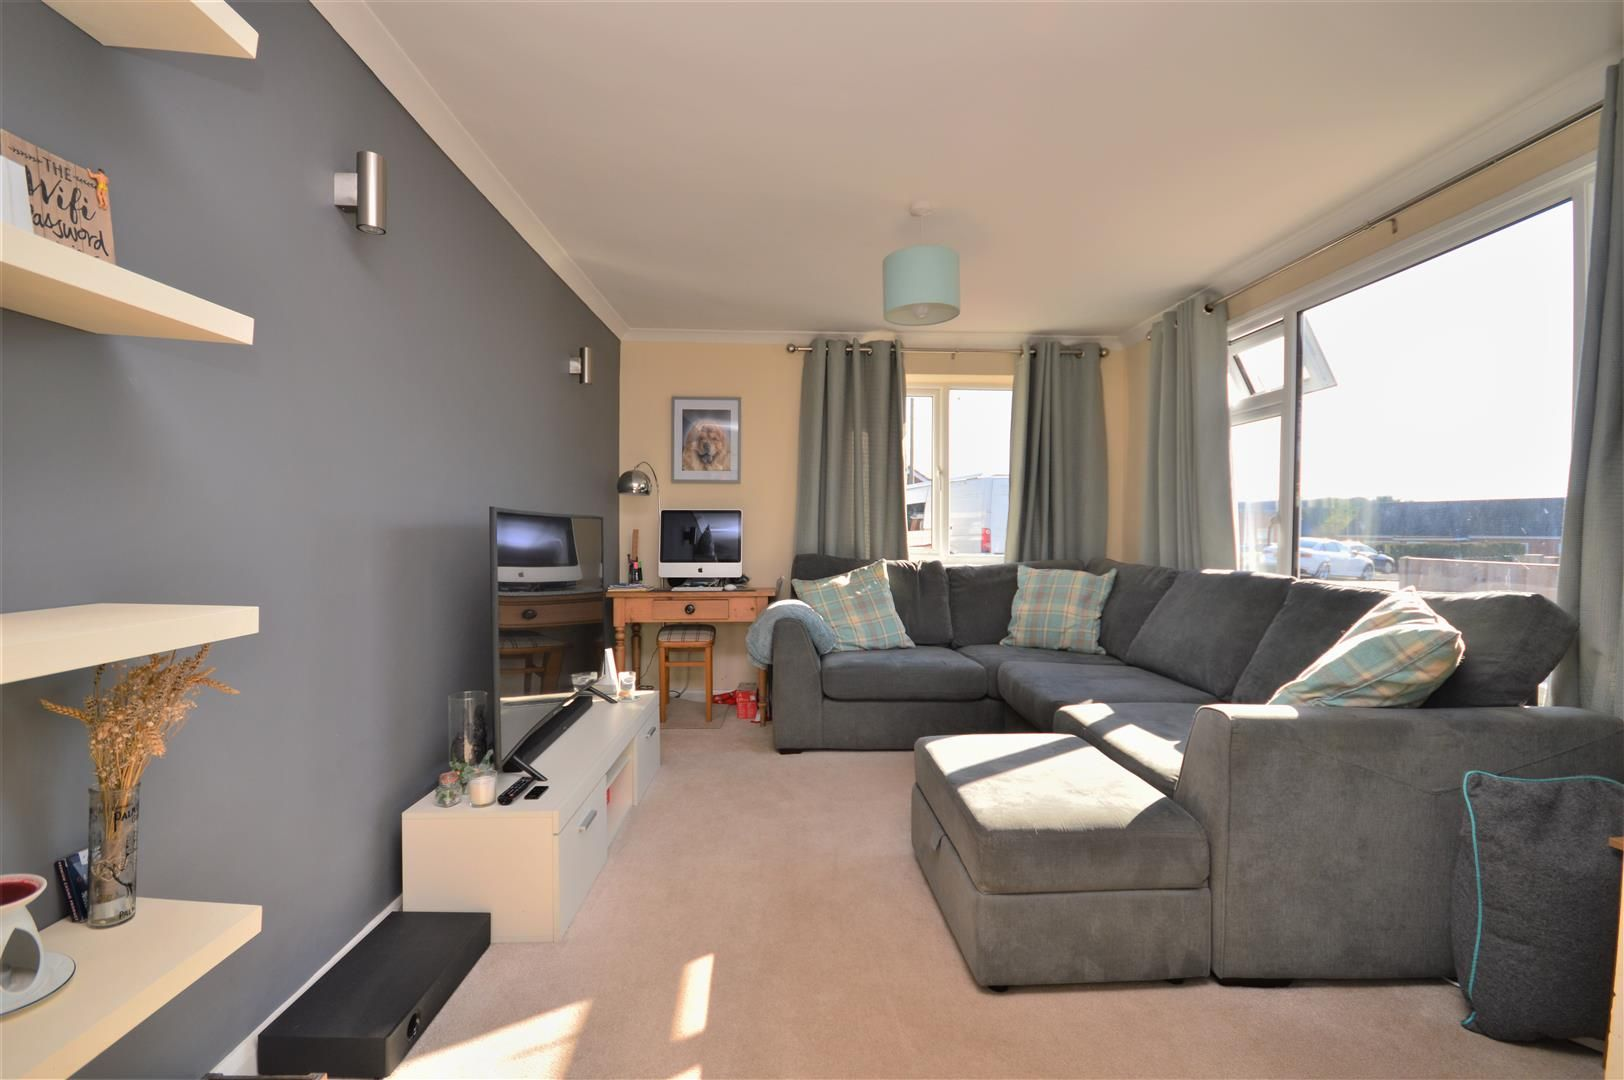 2 bed semi-detached-bungalow for sale in Marden 2